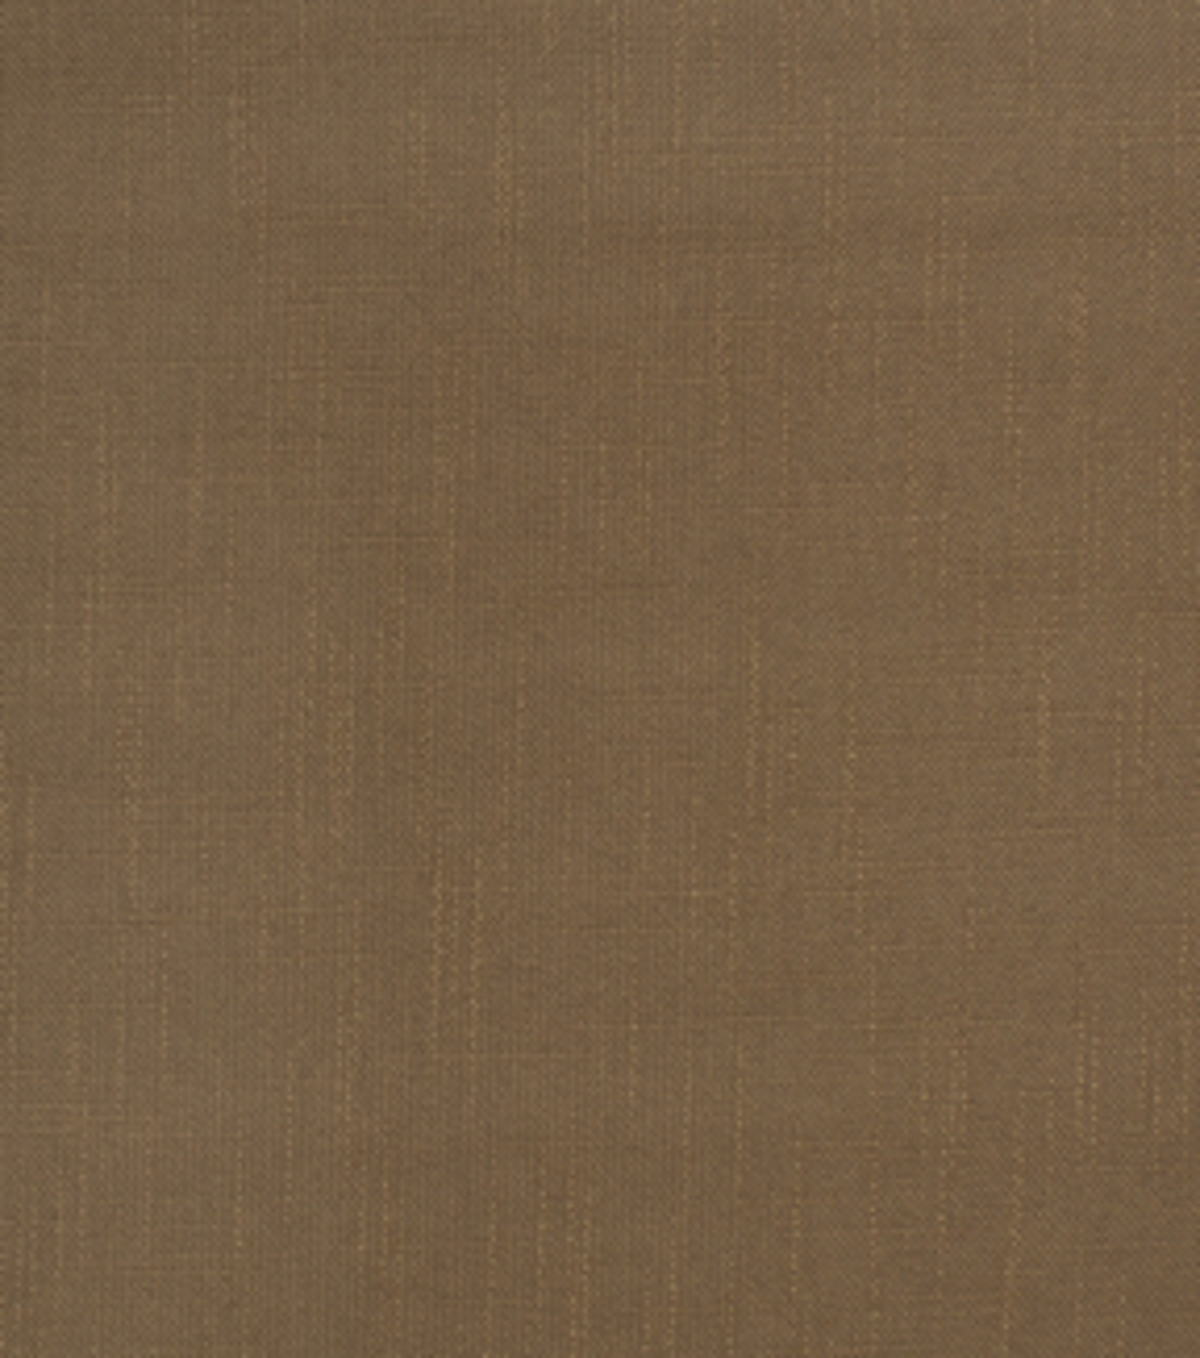 Home Decor 8\u0022x8\u0022 Fabric Swatch-Signature Series Gallantry Mushroom